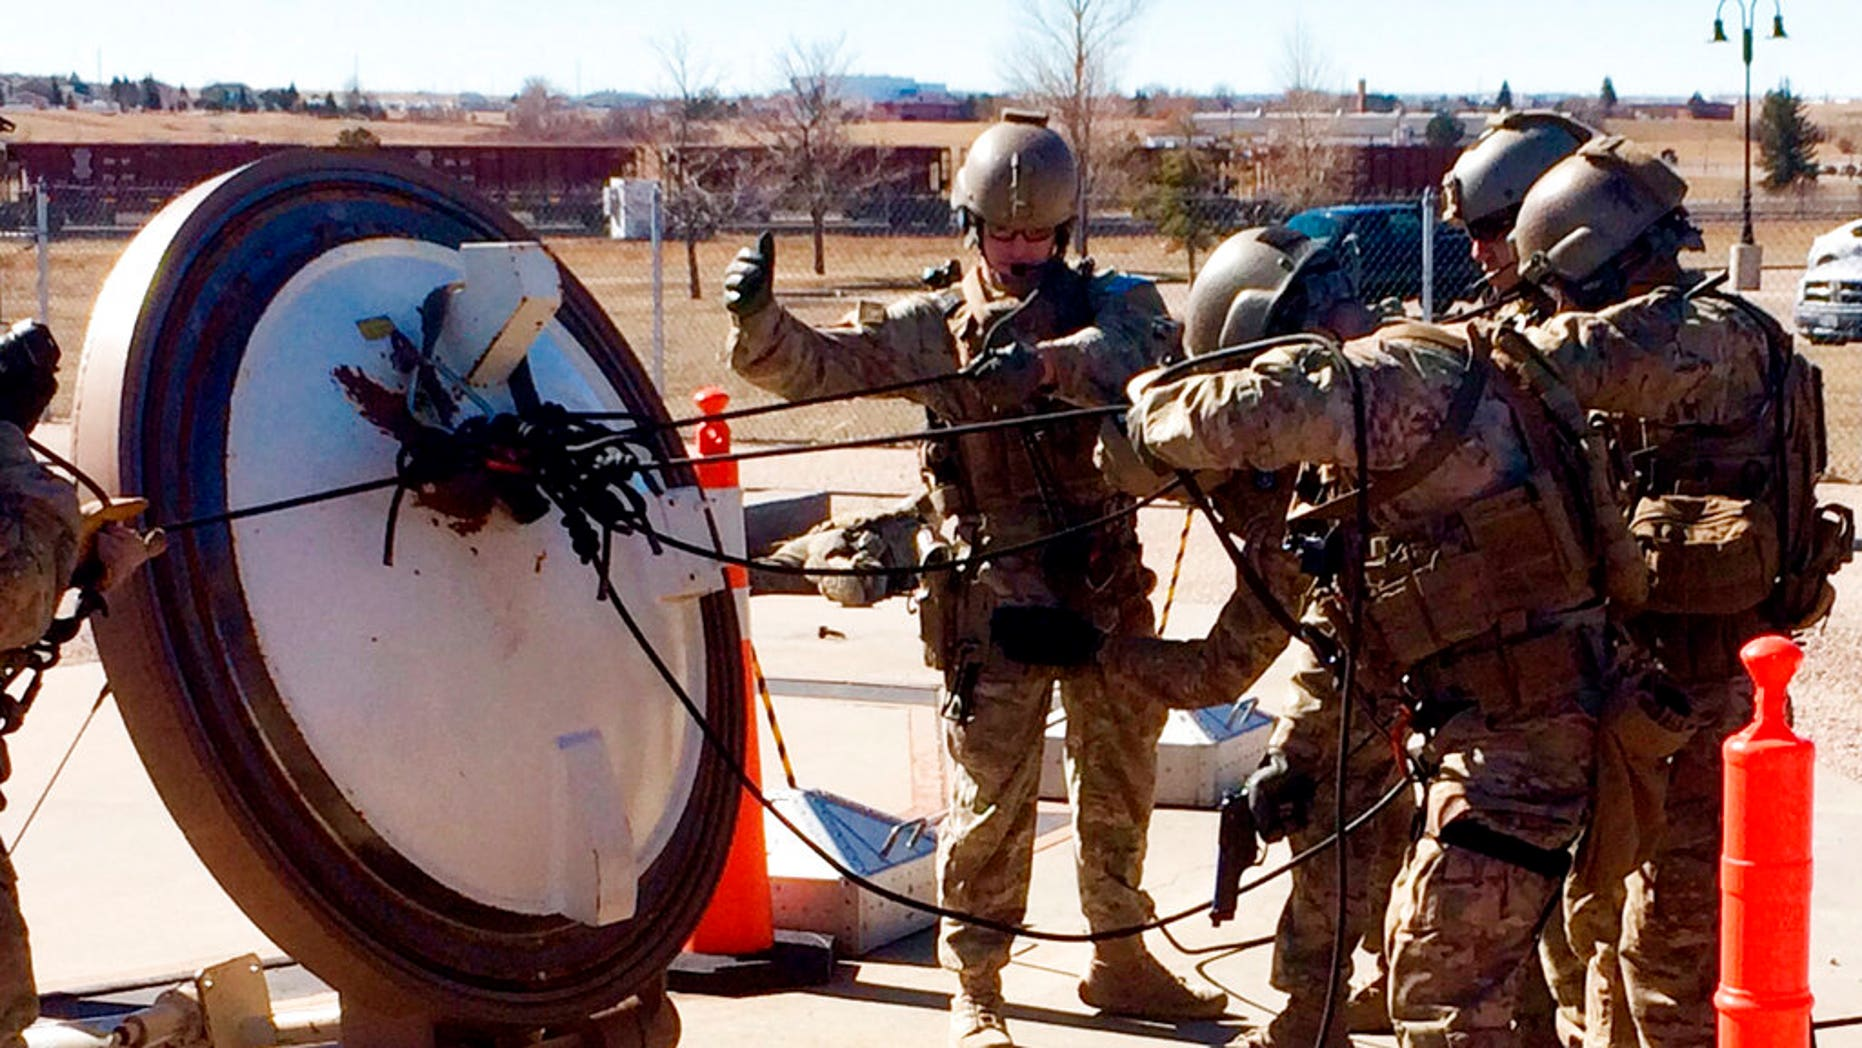 In this February 2016 photo, members of the 790th Missile Security Forces Squadron demonstrate their training for recapturing a Minuteman missile silo after being taken over by an intruder/attacker, just days before the Air Force announced the drug investigation, at the Francis E. Warren Air Force Base, near Cheyenne, Wyo.